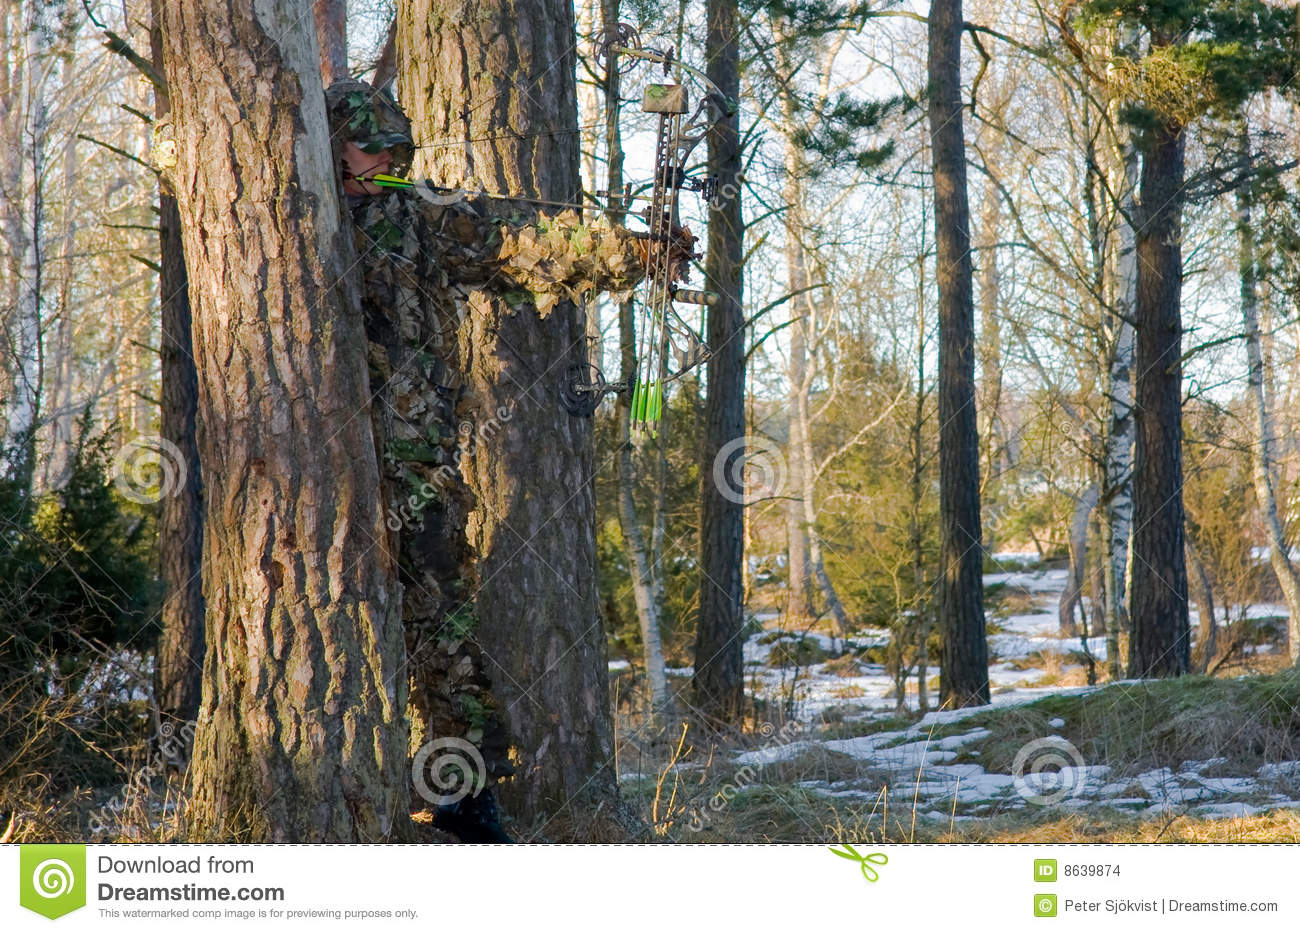 Bow hunter camouflage